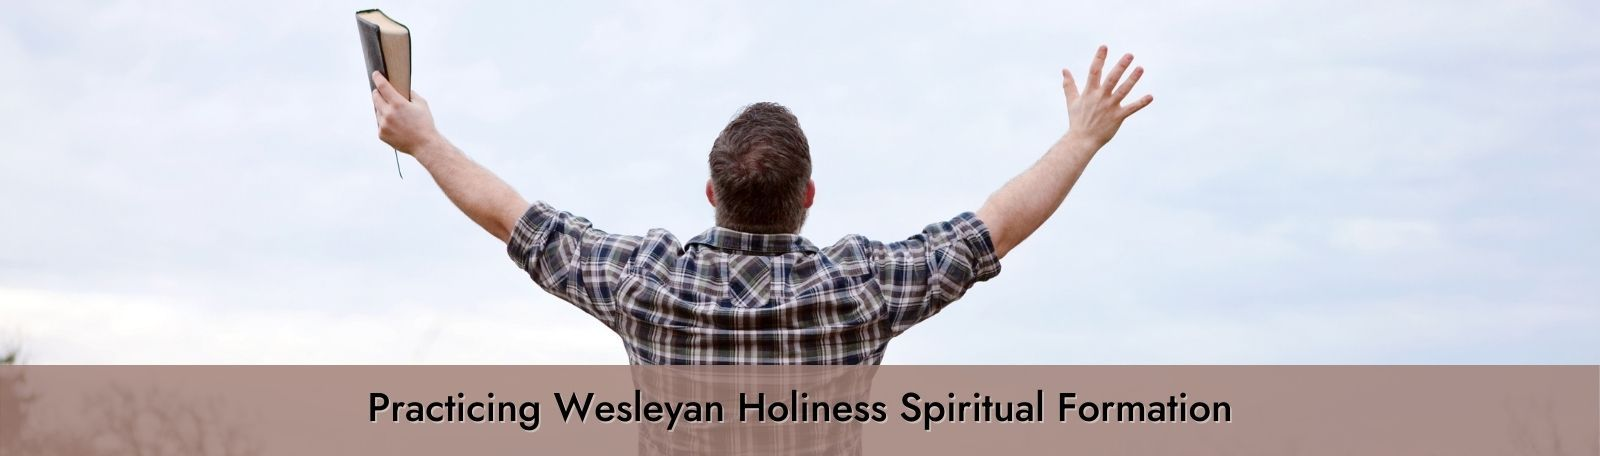 """Featured image for """"Practicing Wesleyan Holiness Spiritual Formation"""""""